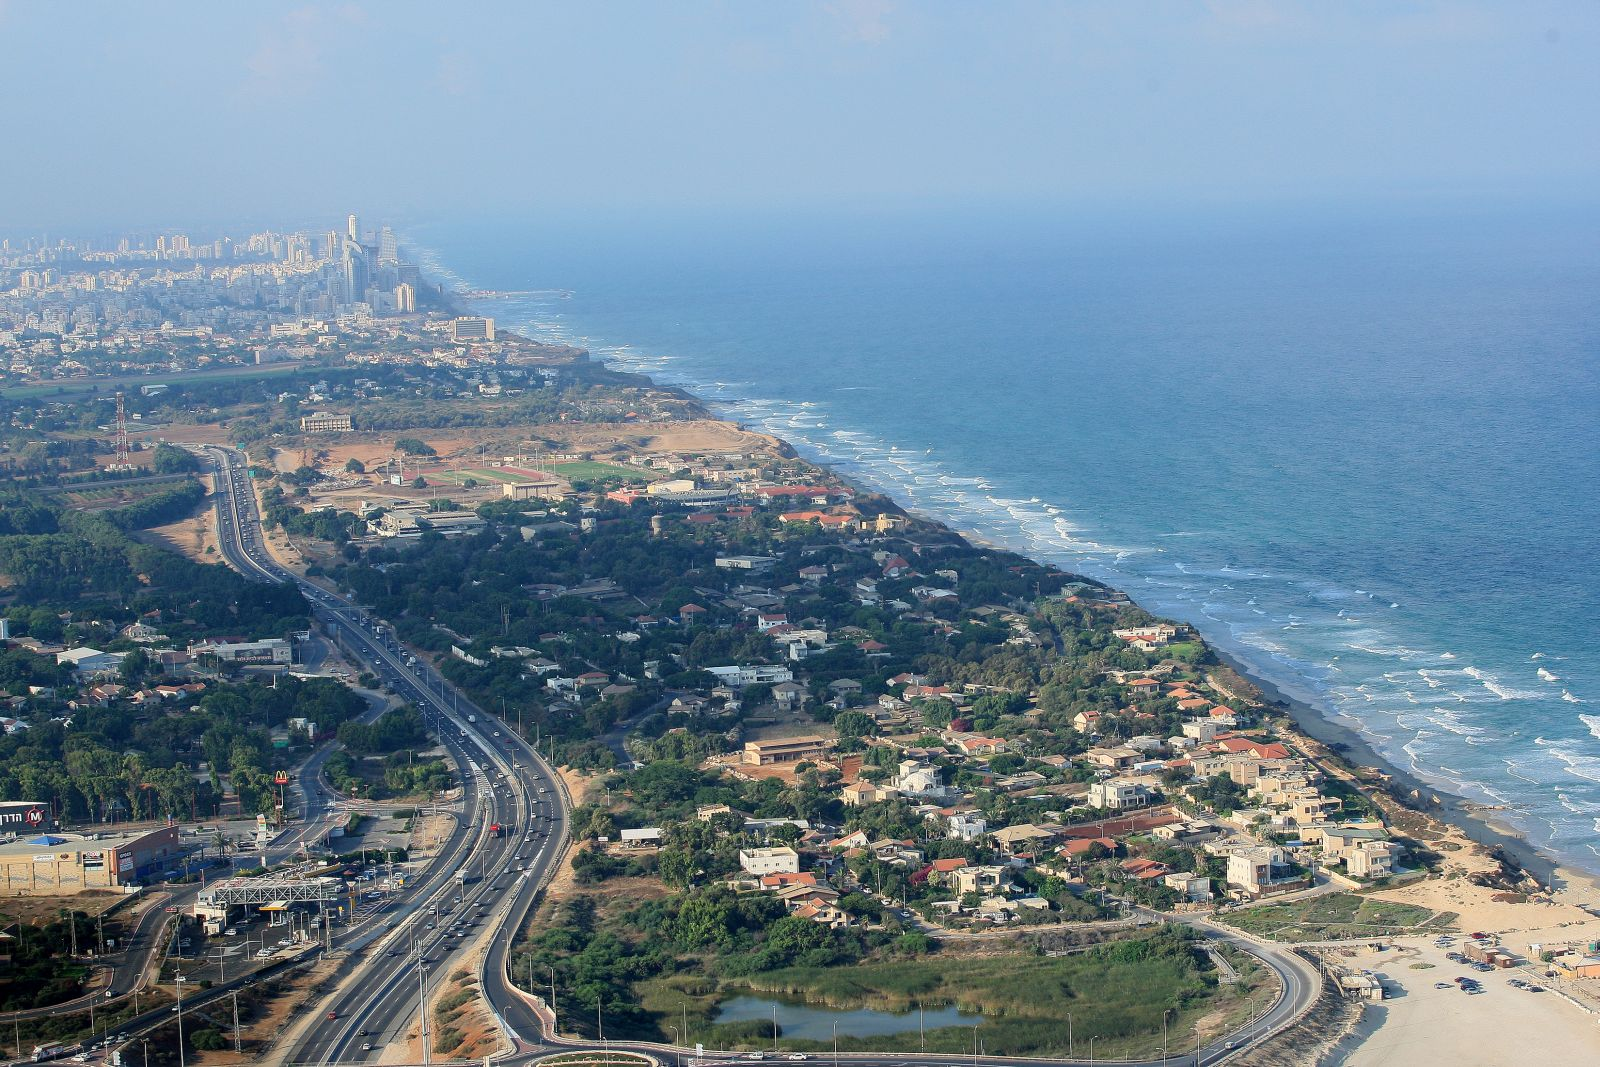 An aerial view of Beit Yanai Beach, near Netanya. Photo by Moshe Shai/FLASH90